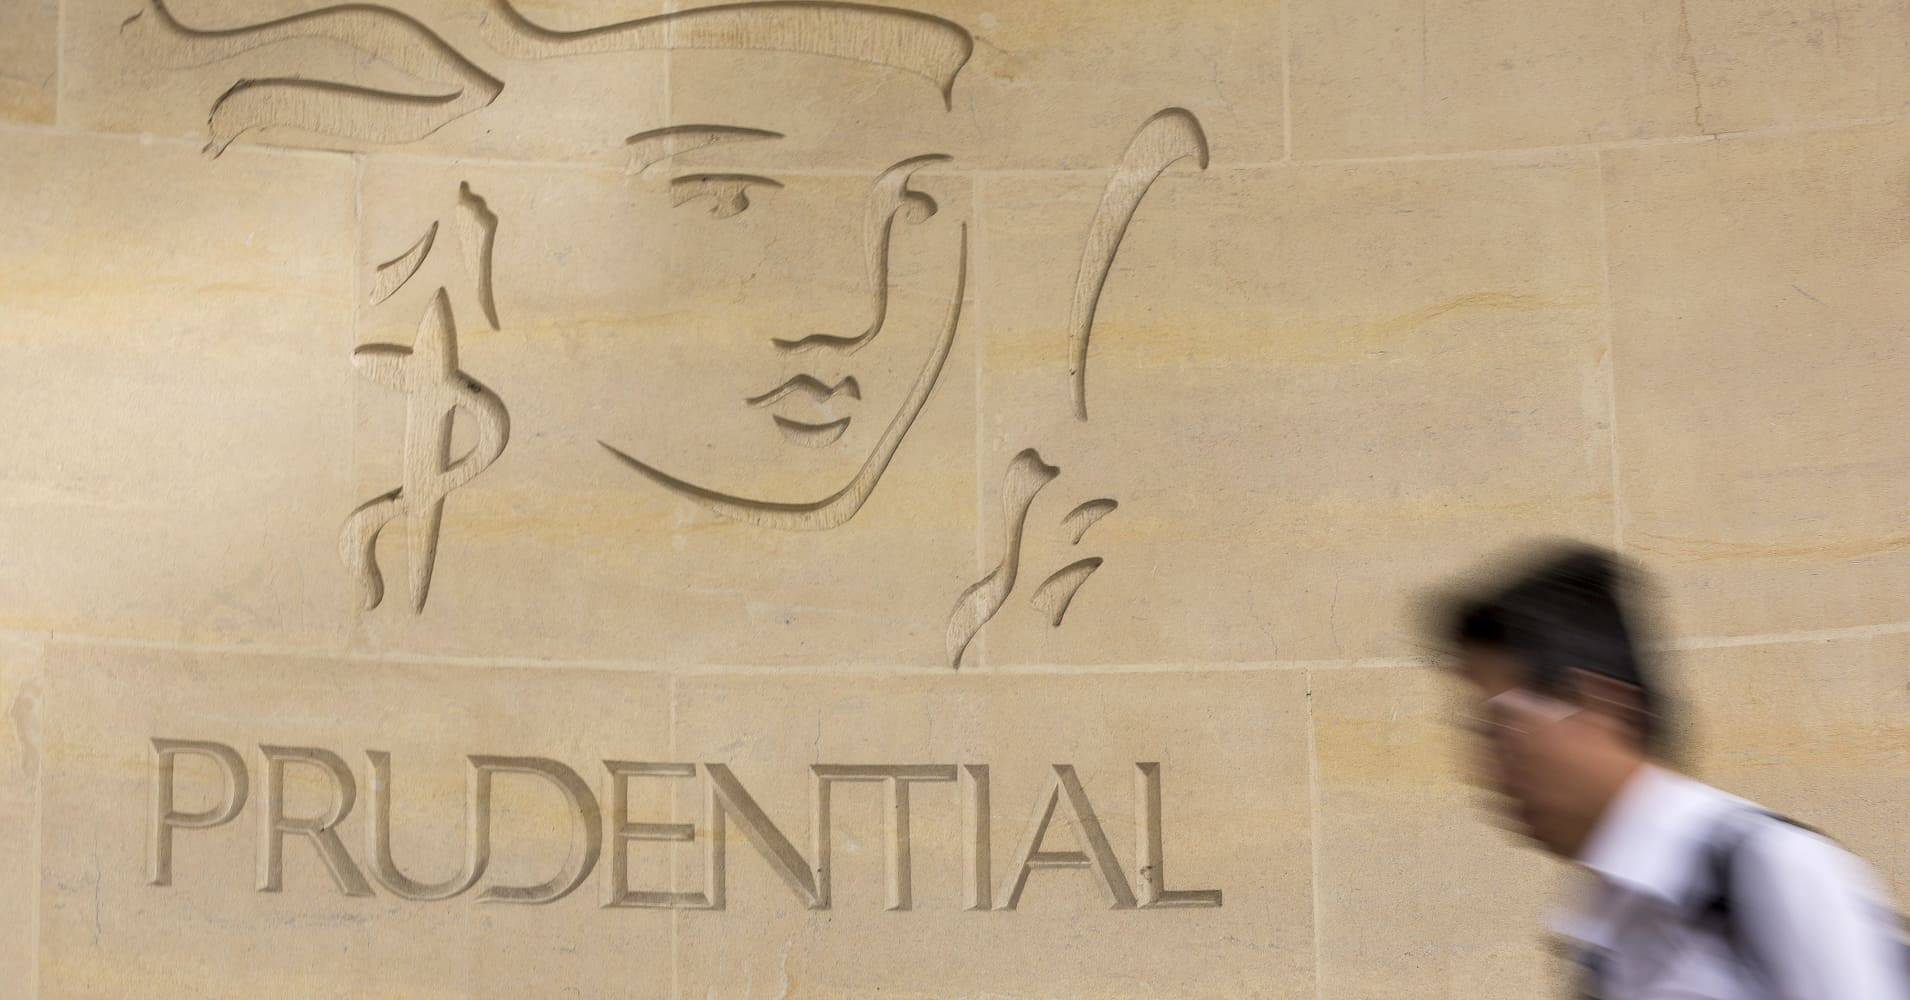 Prudential to spin off UK and European business in radical break-up